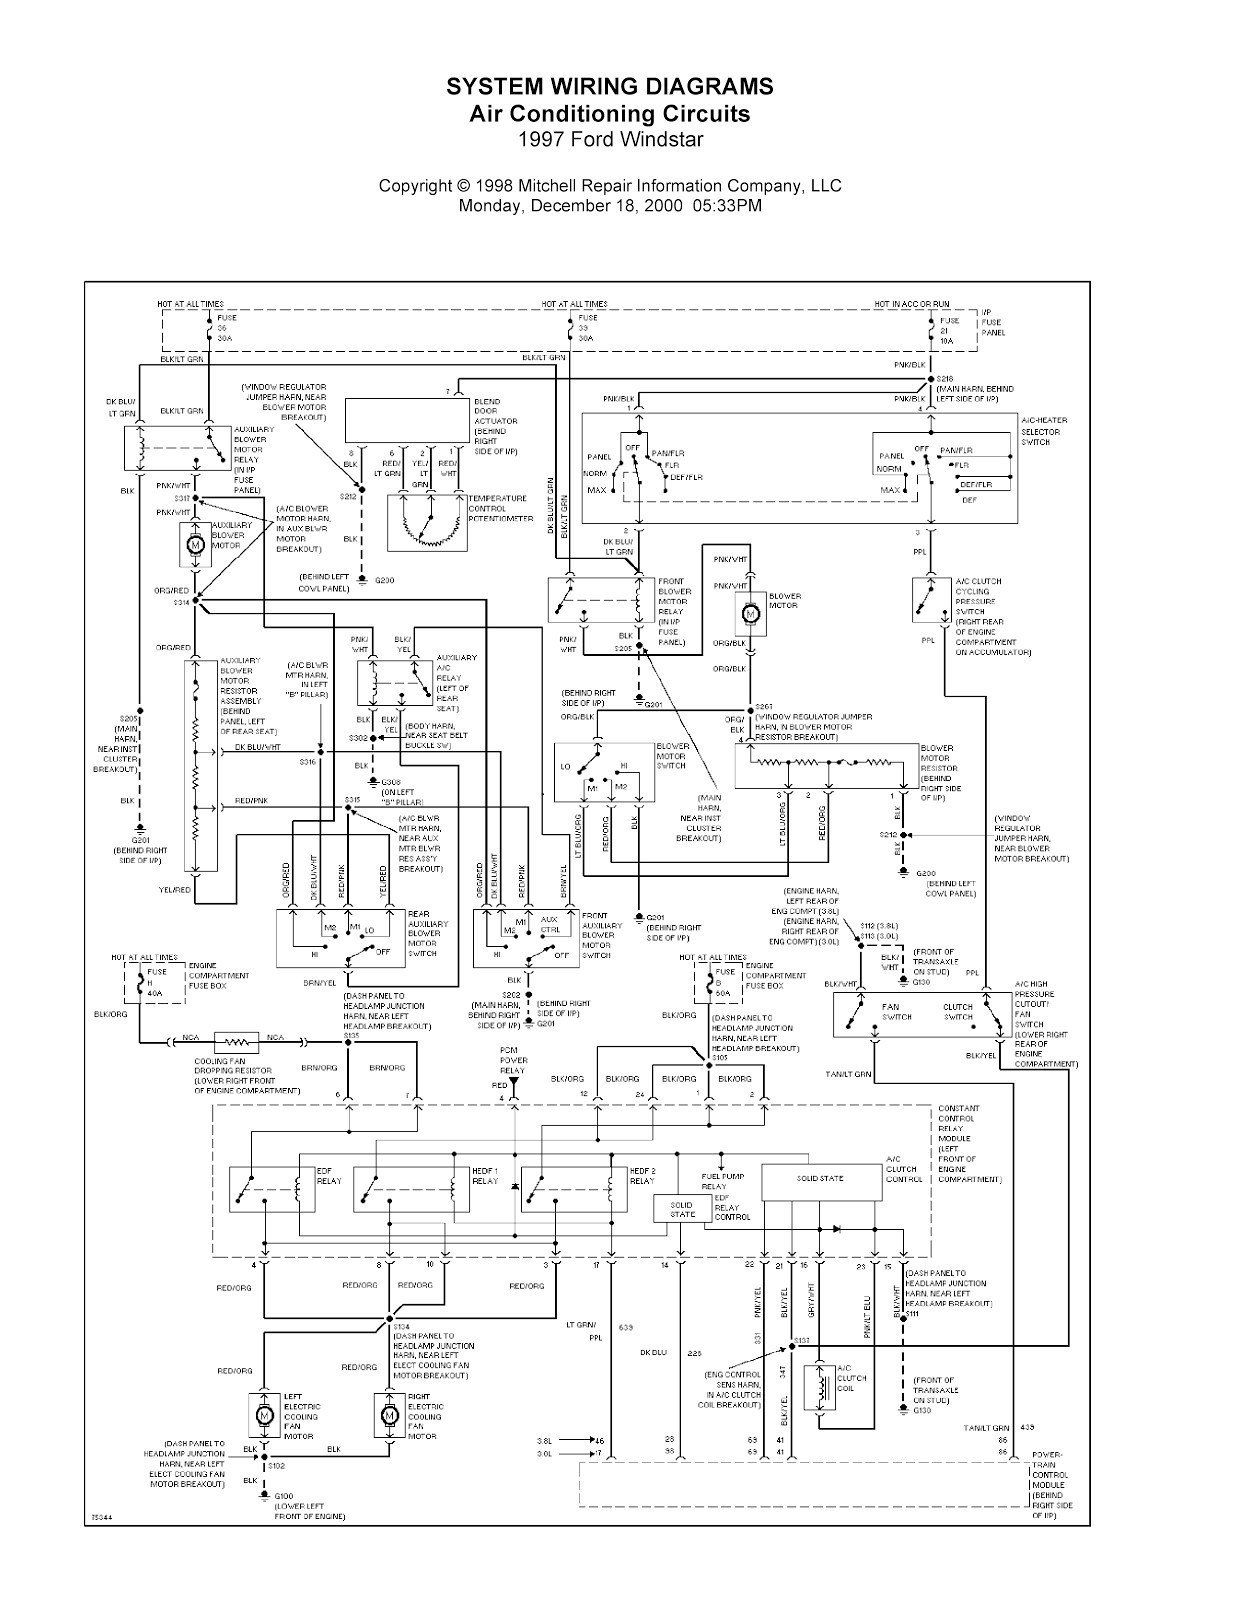 2003 ford Windstar Wiring Diagram 2003 ford Windstar Radio Wiring Diagram Daigram Remarkable 2000 Of 2003 ford Windstar Wiring Diagram 1998 ford F150 4 2 V6 Fuse Box Diagram ford Wiring Diagrams